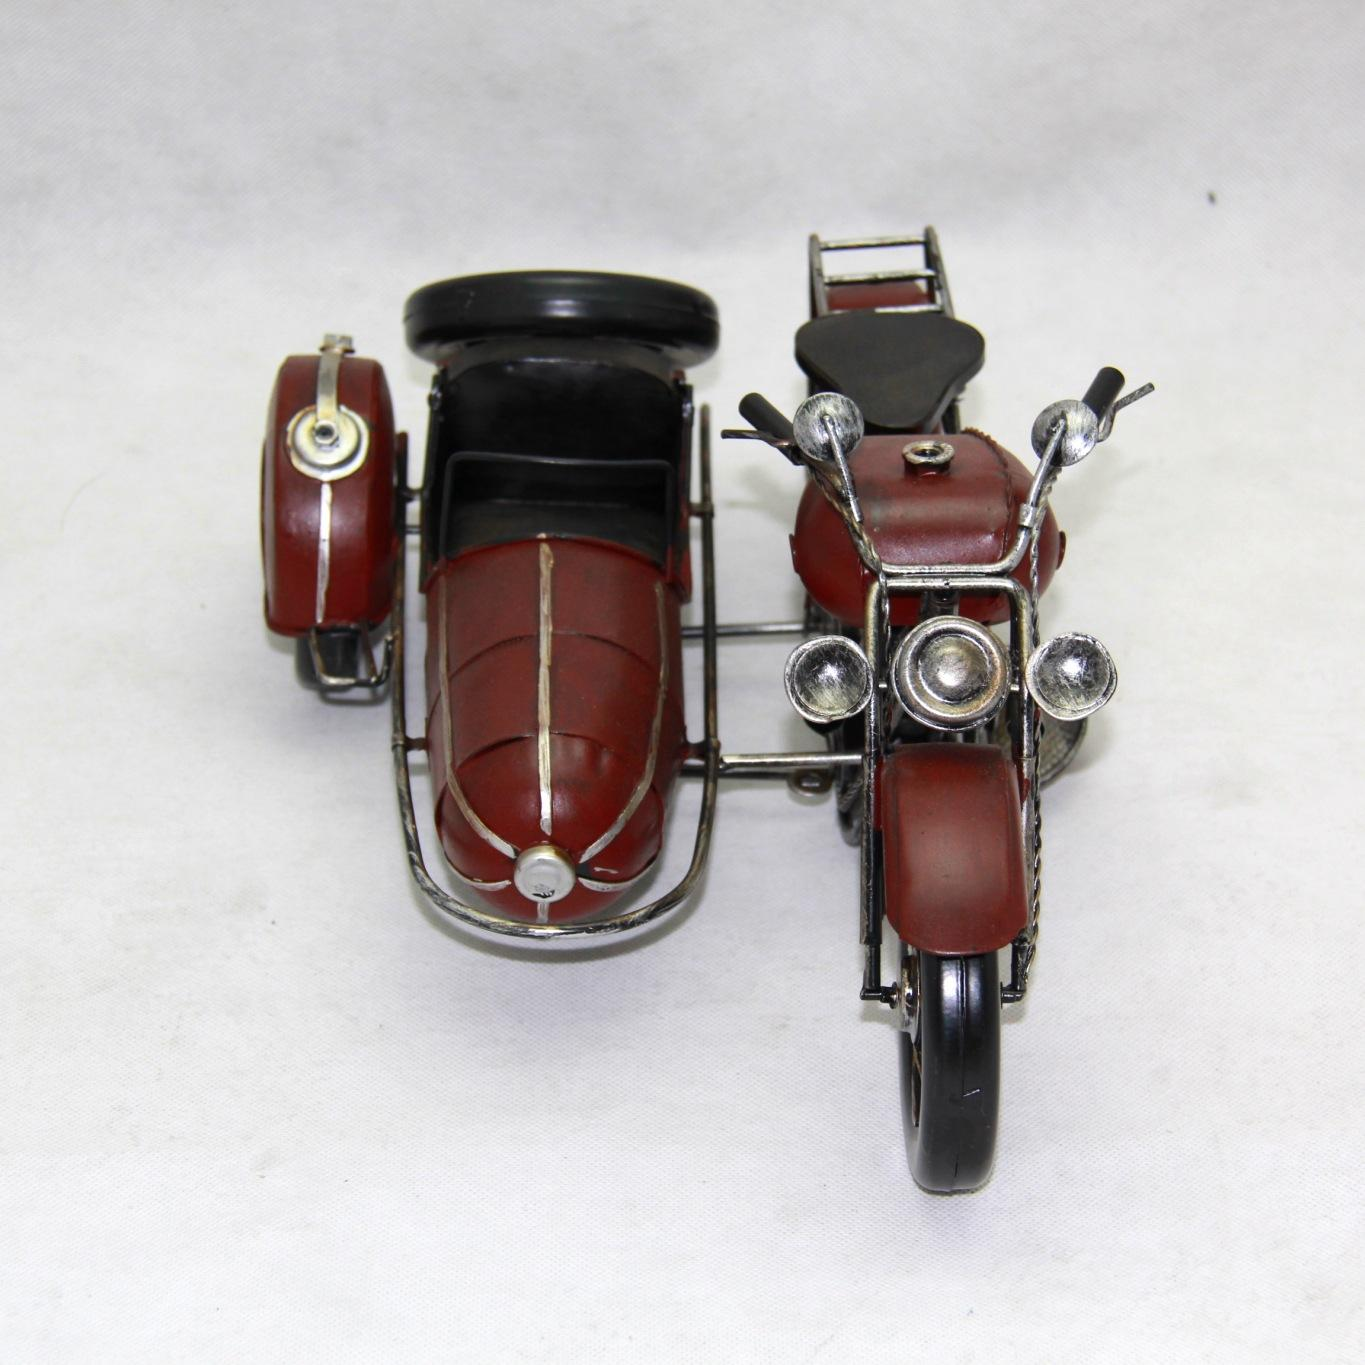 2021 Tinplate Military Motorcycle Model Hand Made Motor Tricycle Toy Furniture Decoration Work Of Art Personalized For Gift Collecting From Edwardtang 47 24 Dhgate Com